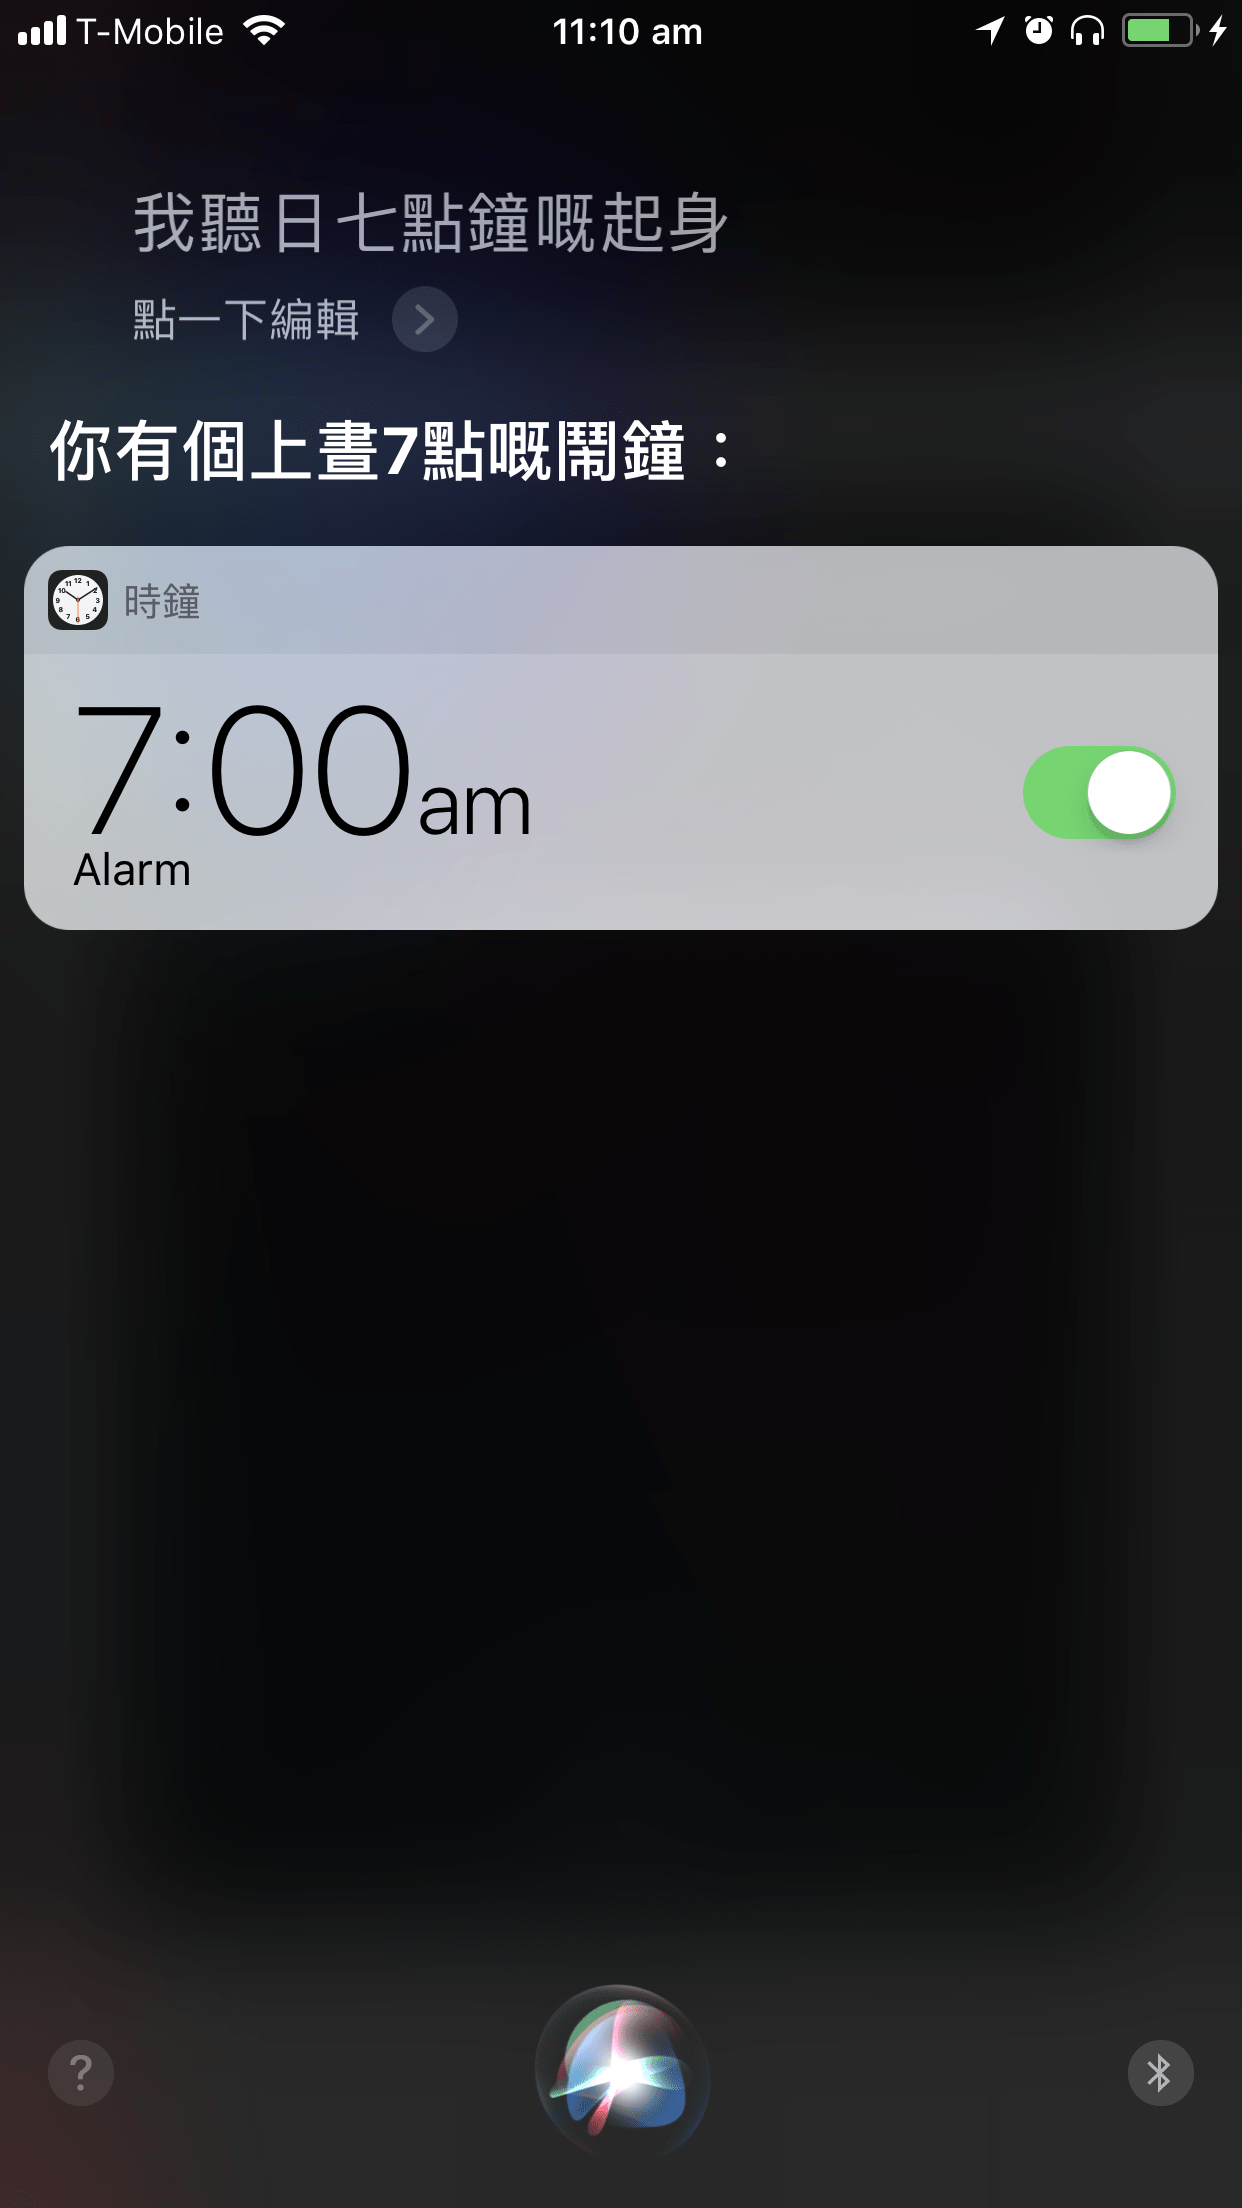 Image of Siri on iPhone being asked to set a 7am alarm, in Cantonese Chinese.